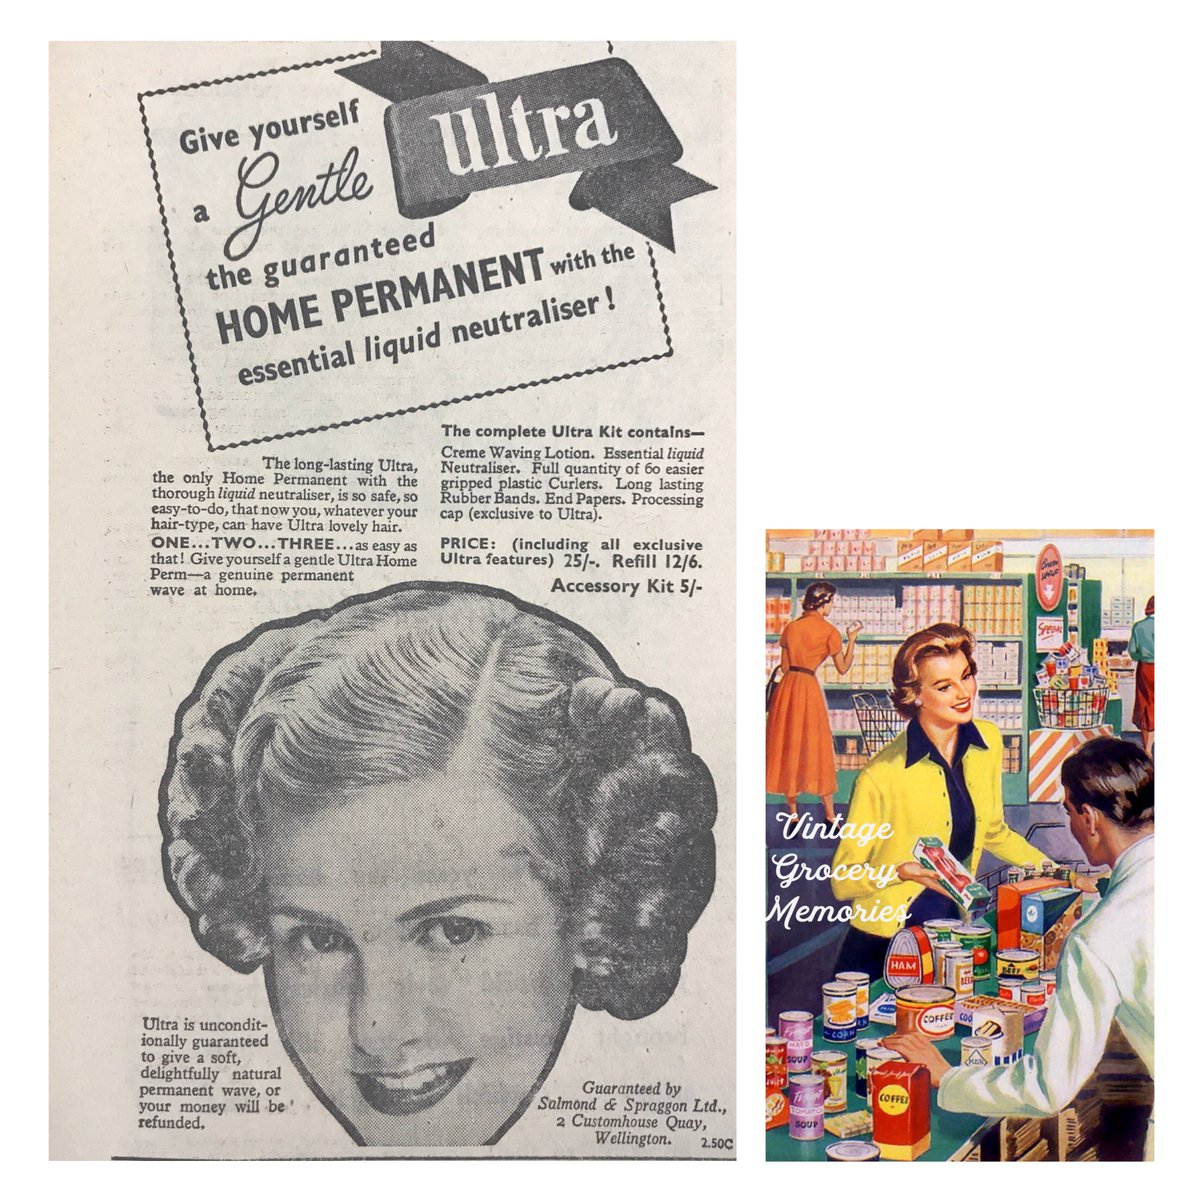 Katherine rich on twitter the ultra home perm nz advertising katherine rich on twitter the ultra home perm nz advertising campaign 1951 fmcg newzealand vintageadvertising homeperm solutioingenieria Images